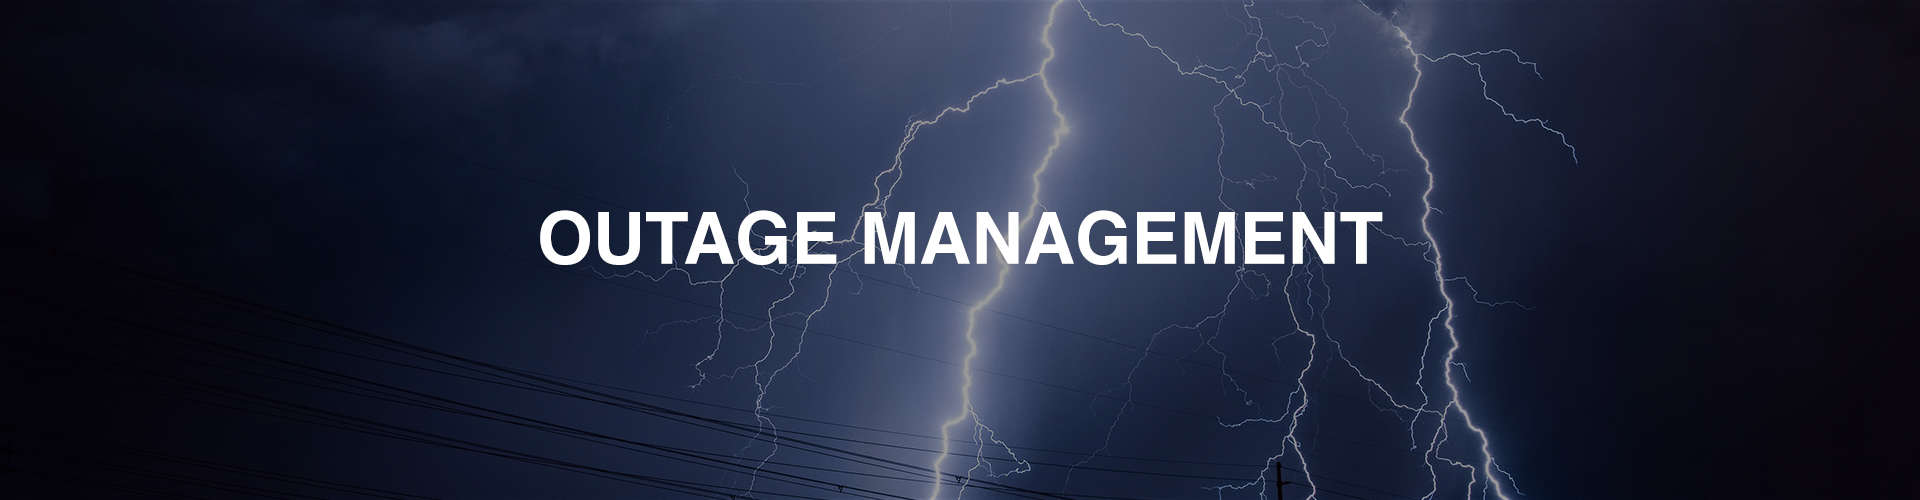 Outage Management